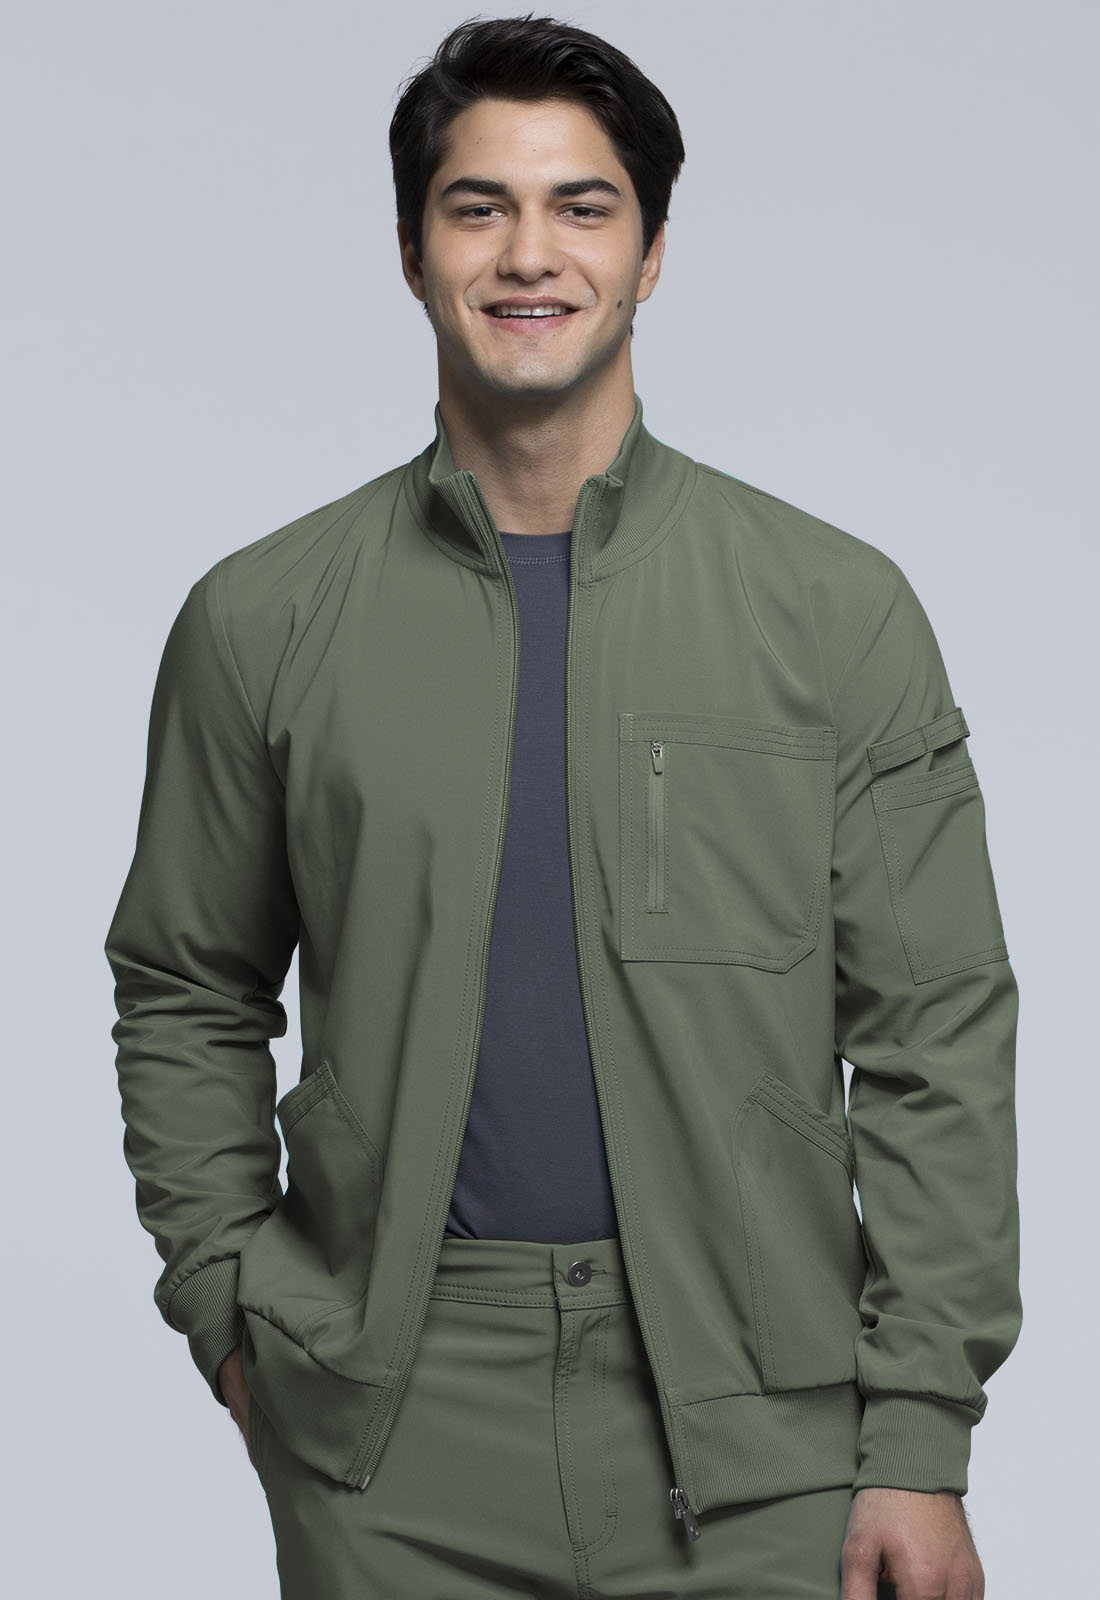 c2a7665a838 Infinity Men's Zip Front Jacket in Olive CK305A-OLPS from Scrubs Express